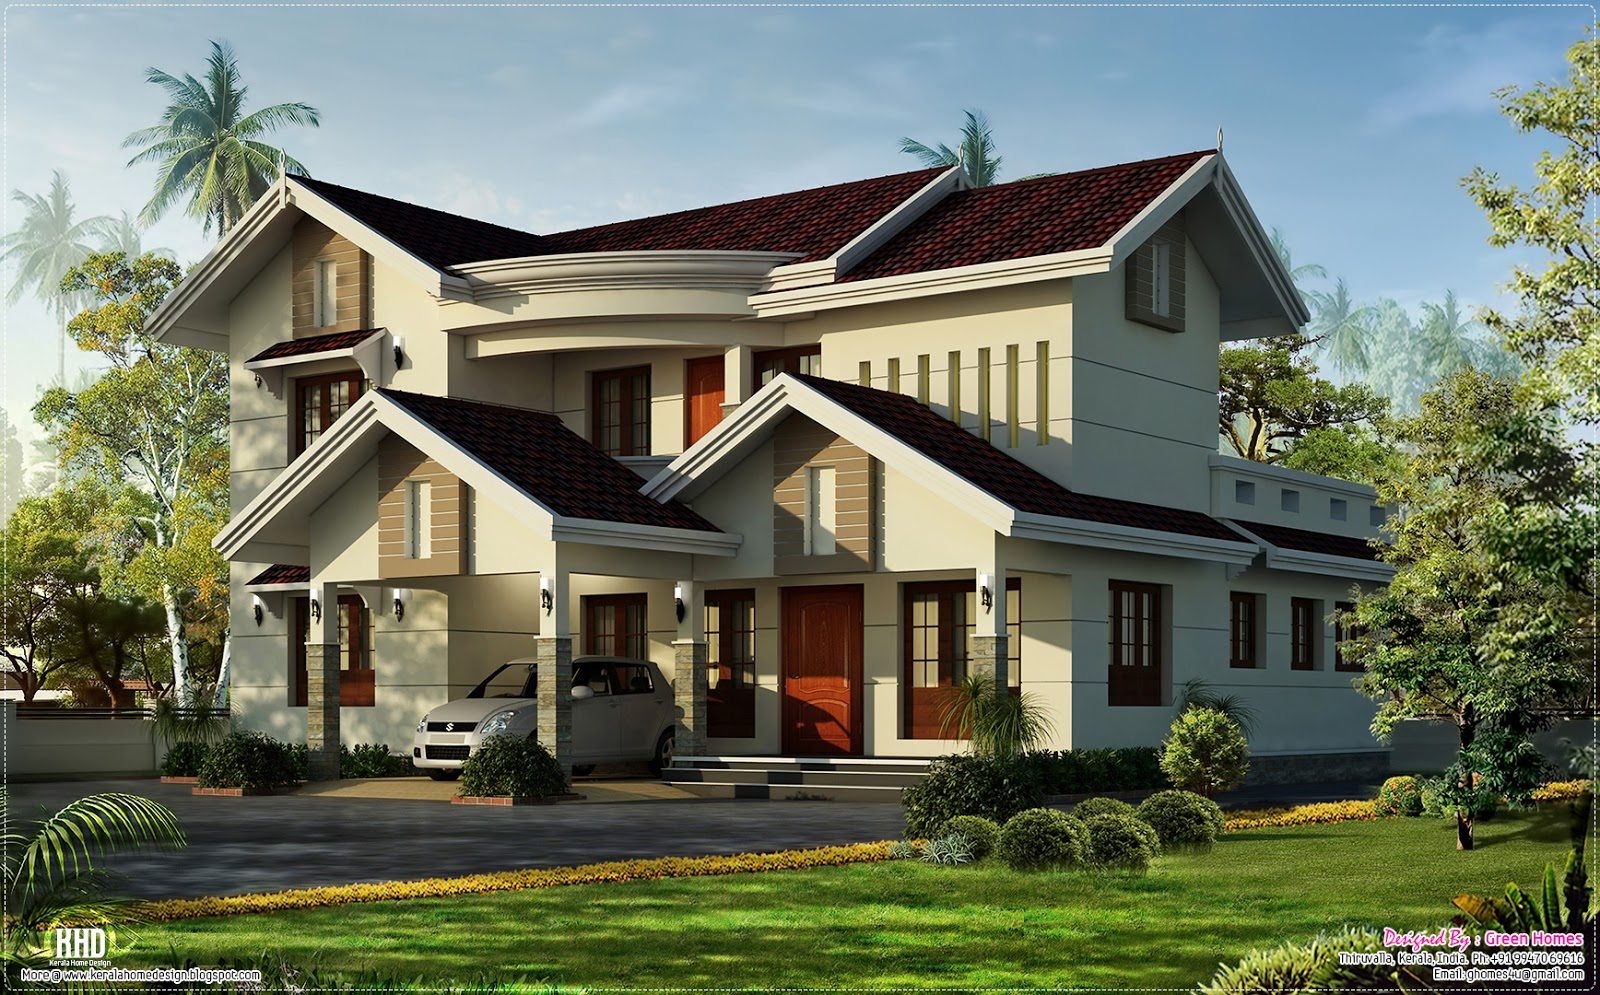 French Country Inspiration At Charity Tour Of Homes furthermore Architecture Kerala Below Square Feet House Plan And Elevation 2 together with Sims 4 House Blueprints as well Home Design Ideas likewise 464011567840784840. on european modern ranch style s